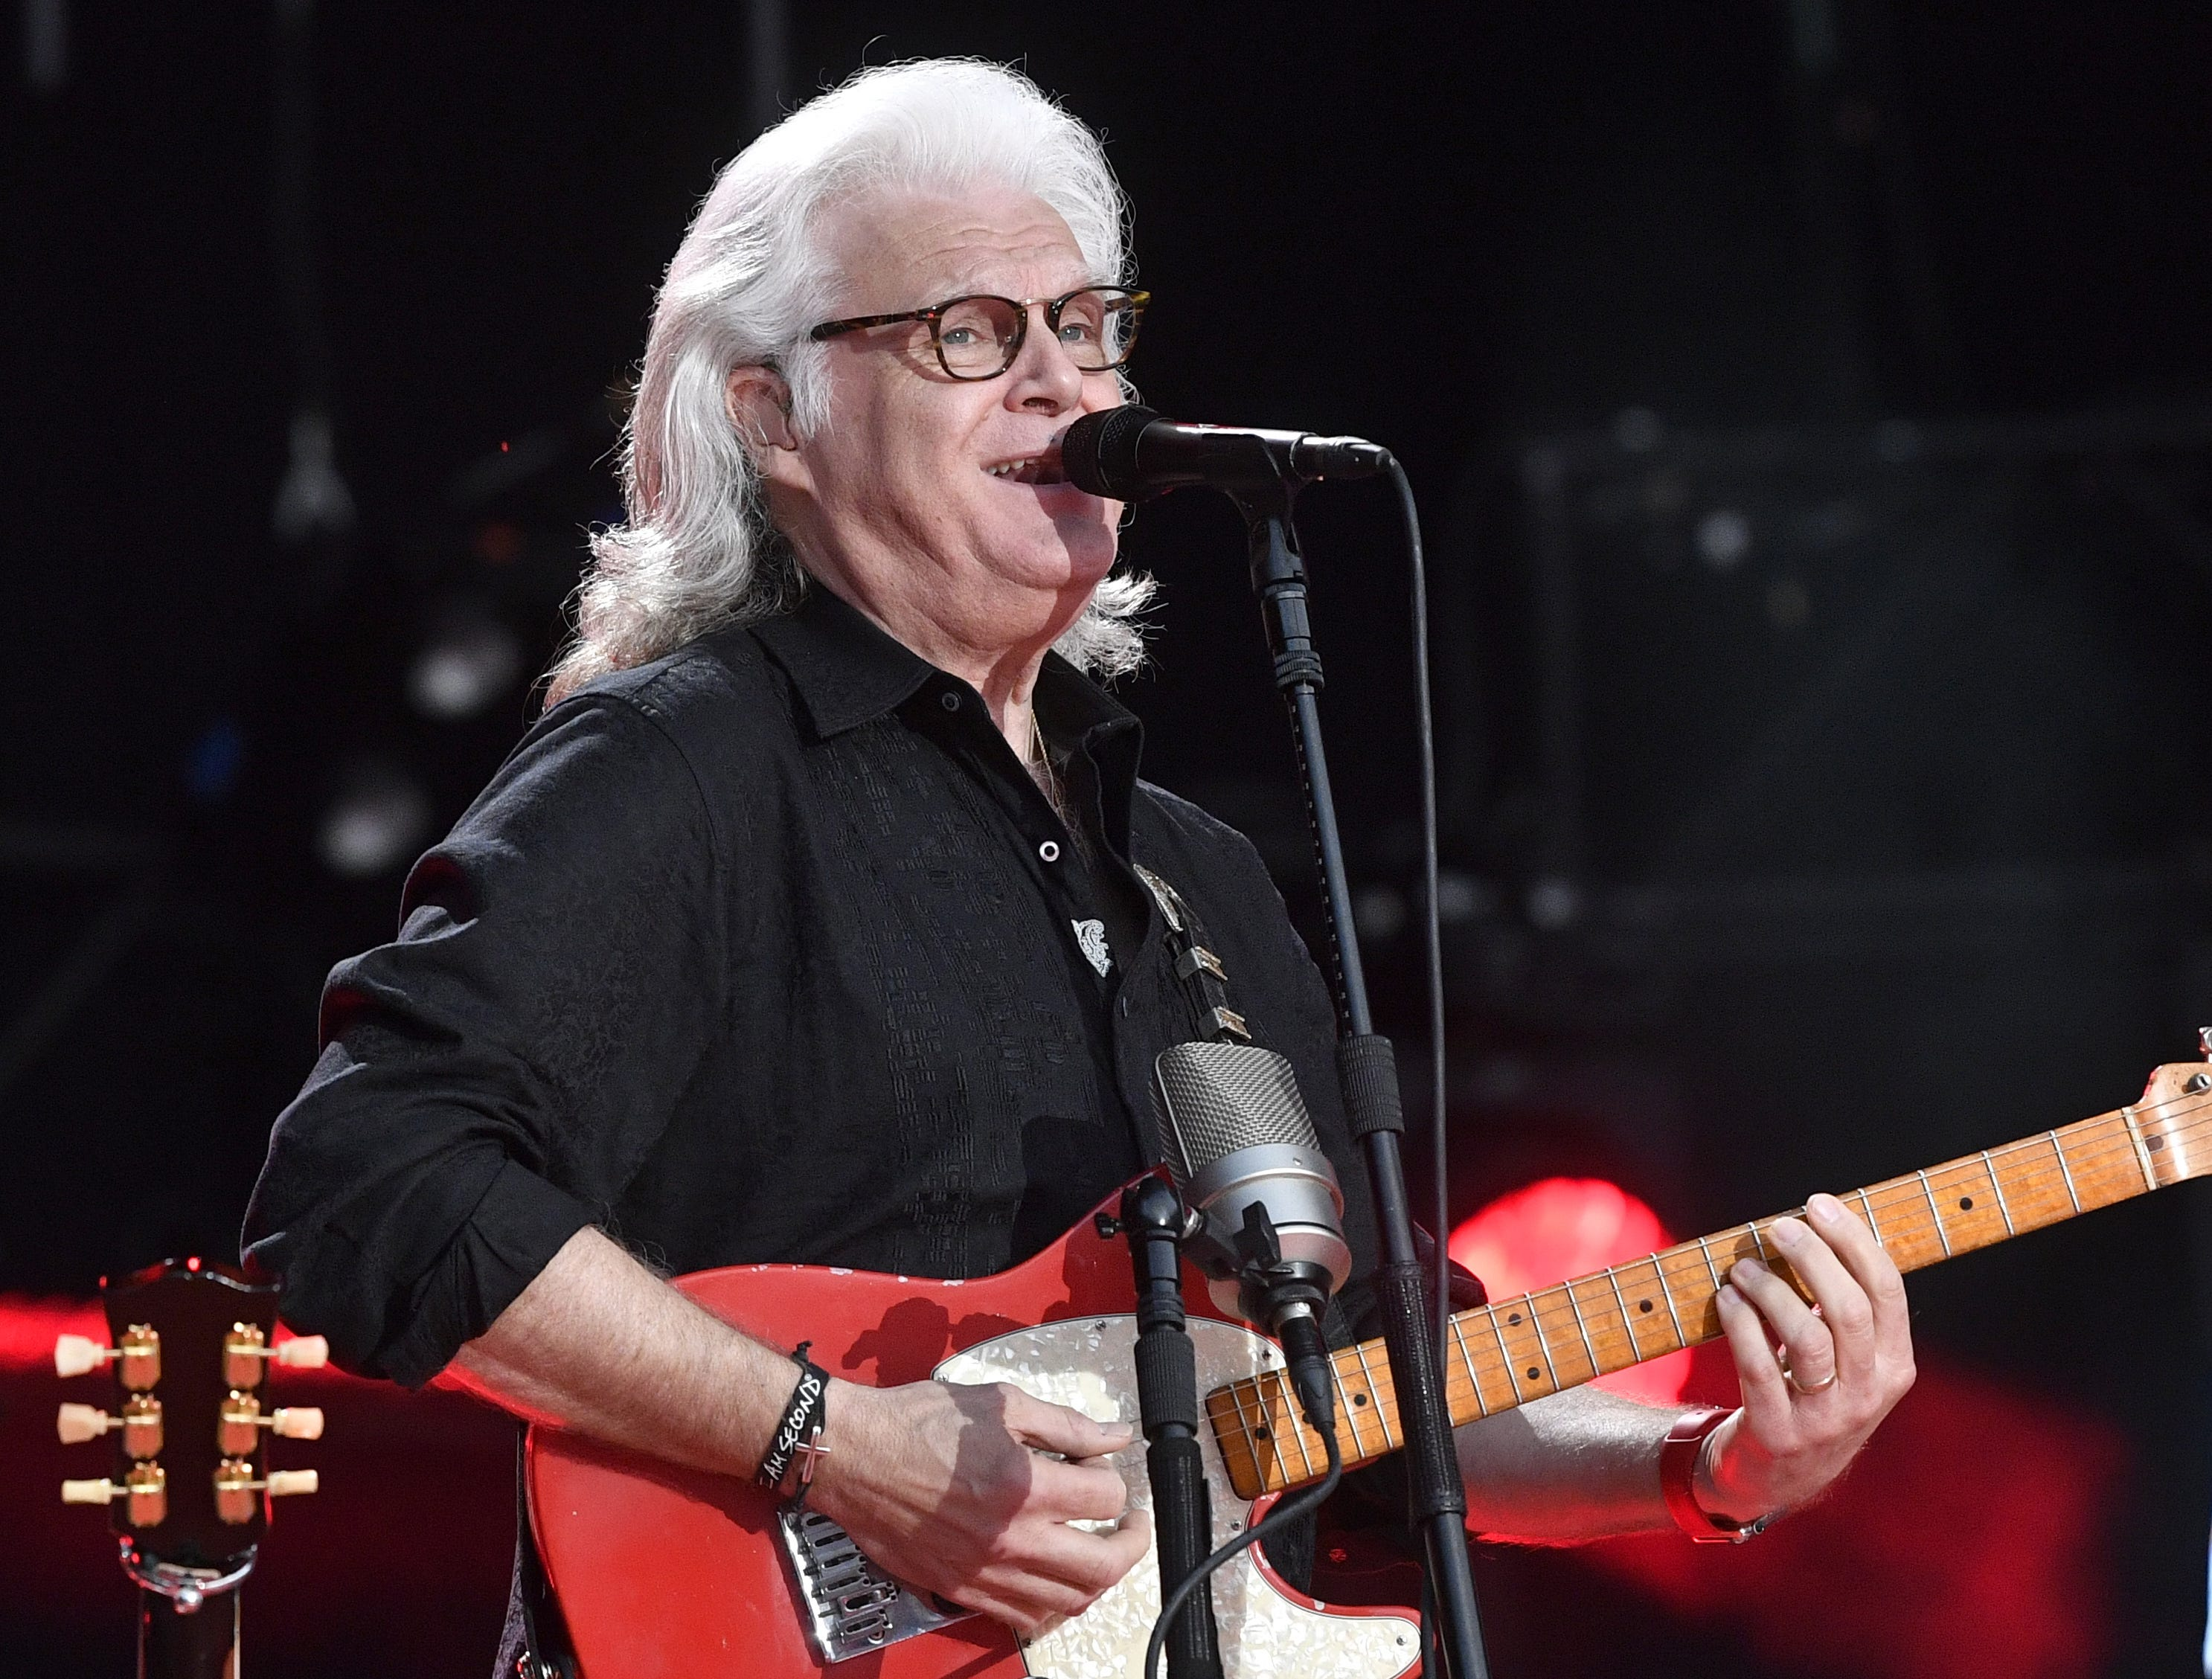 Ricky Skaggs is scheduled to play the Budweiser Forever Country Stage at CMA Fest 2019.